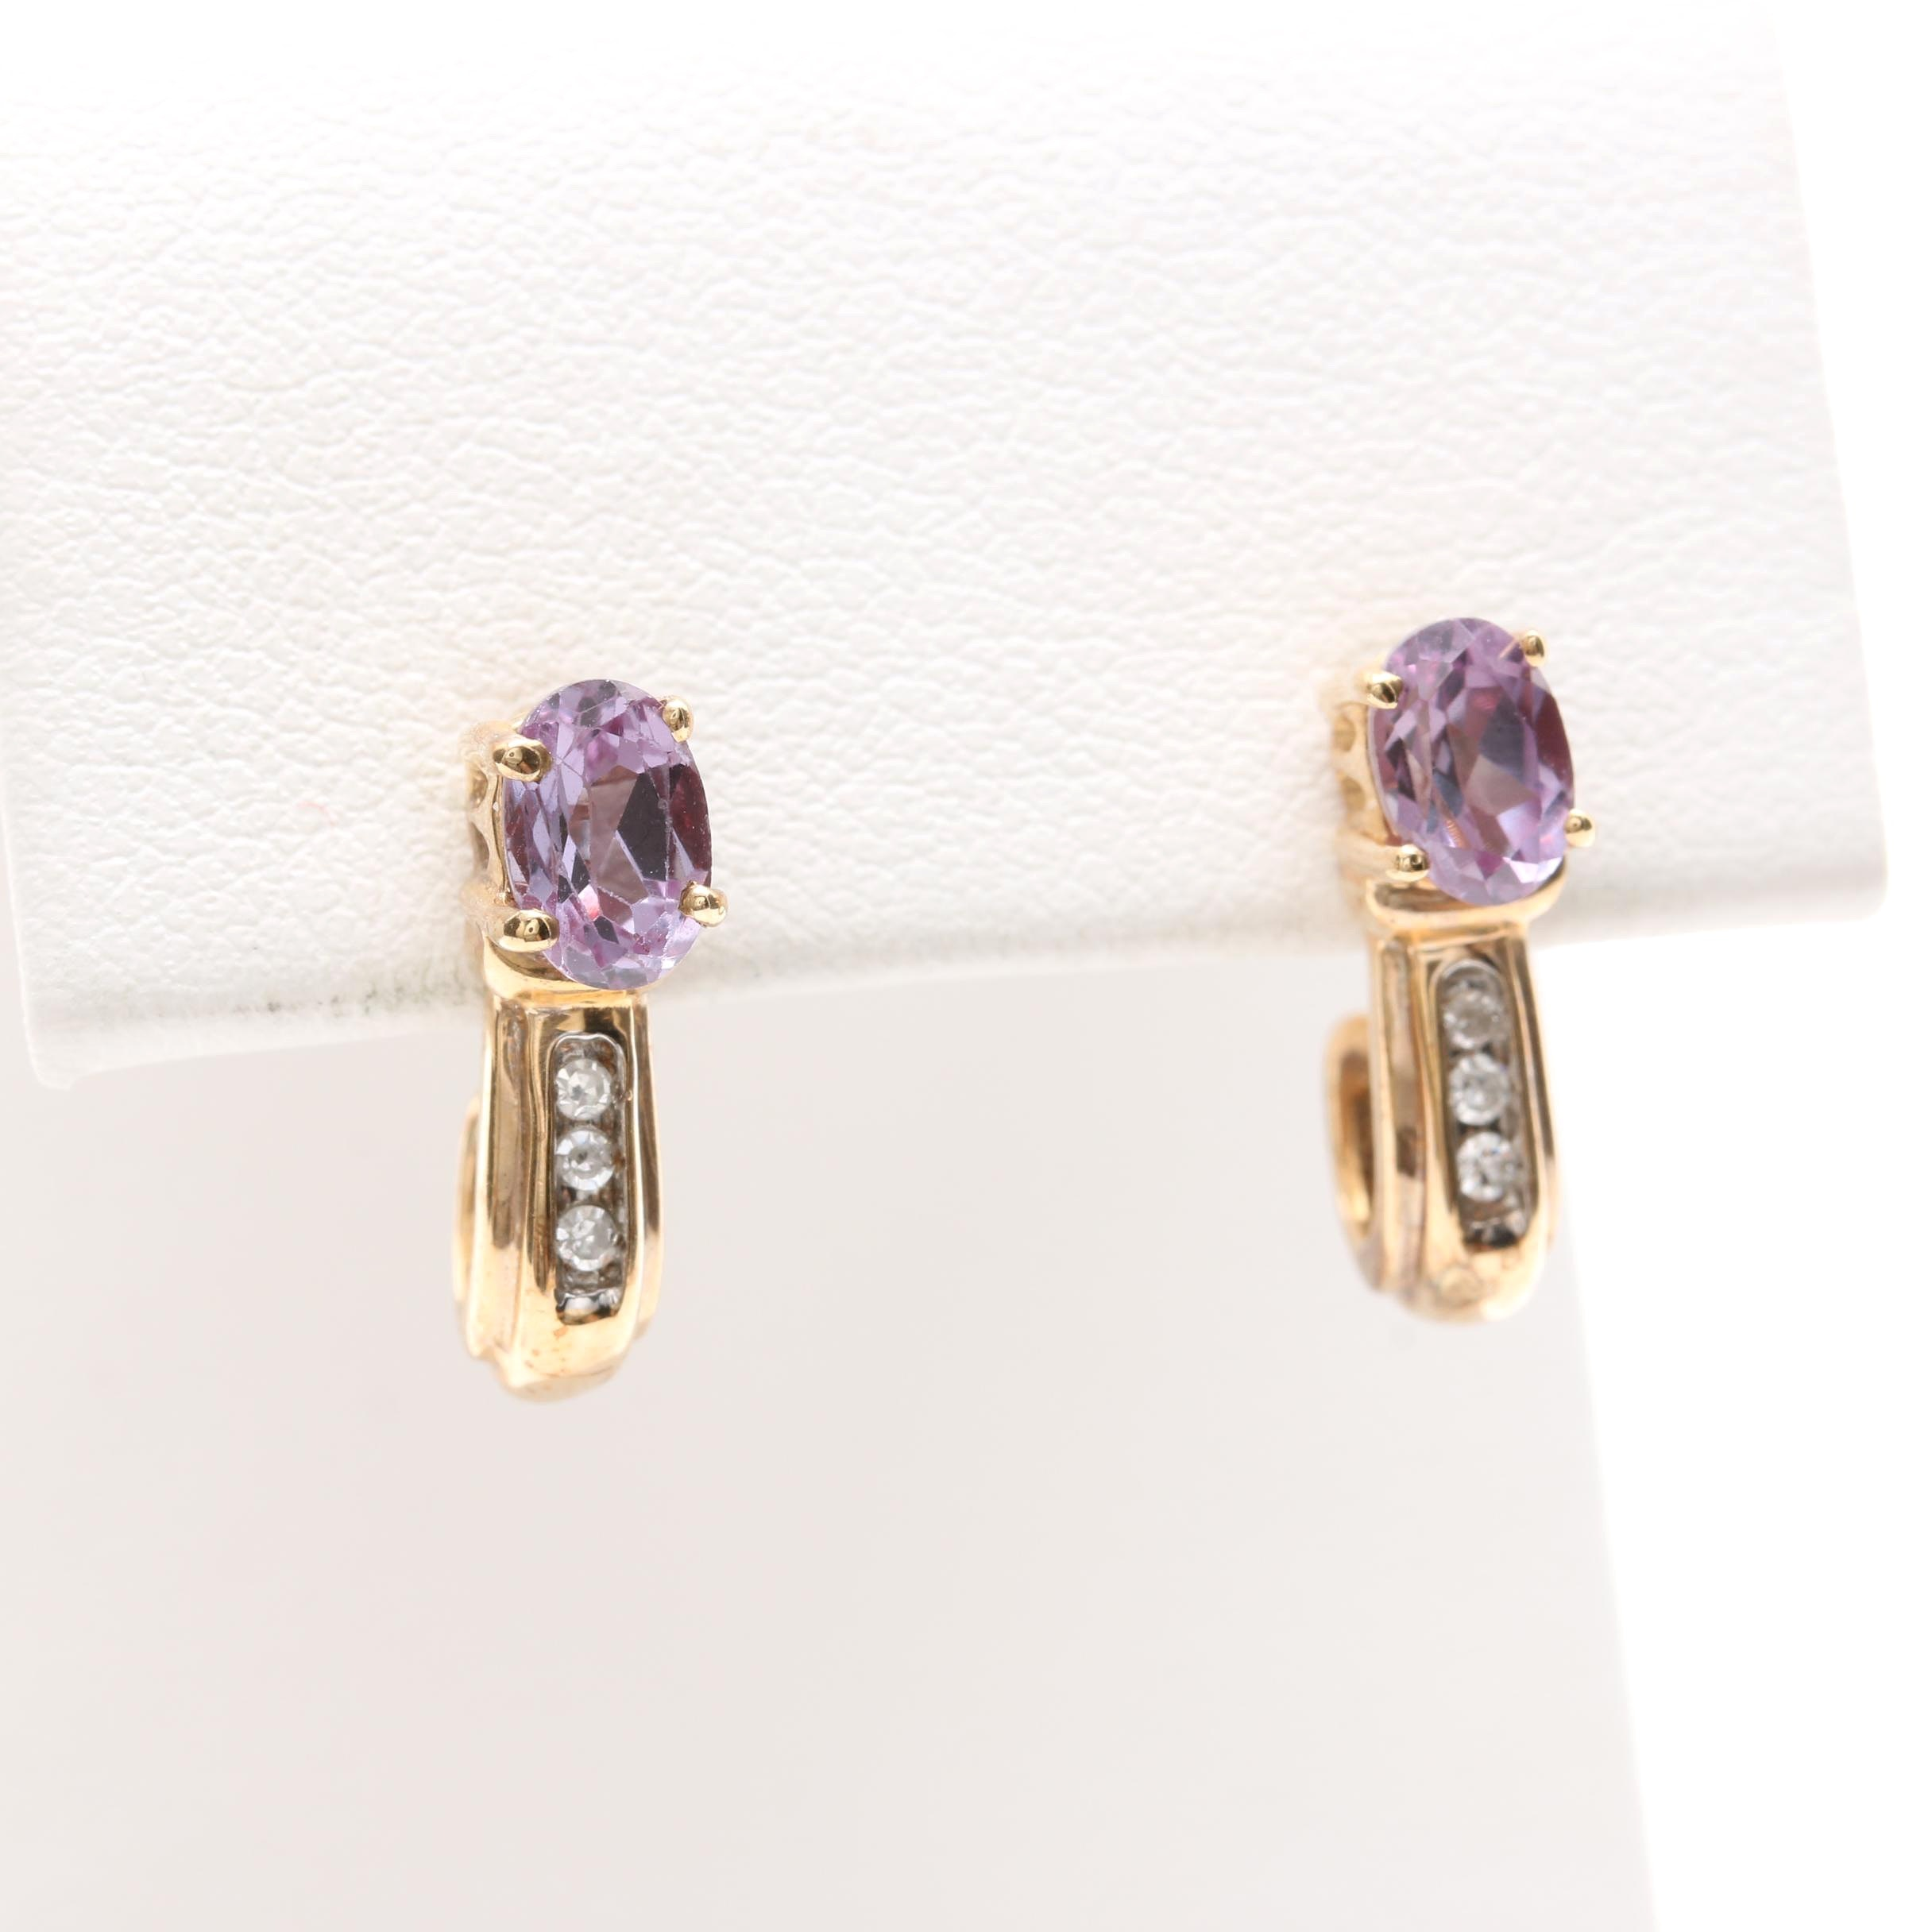 10K Yellow Gold Synthetic Color Change Sapphire and Diamond Earrings